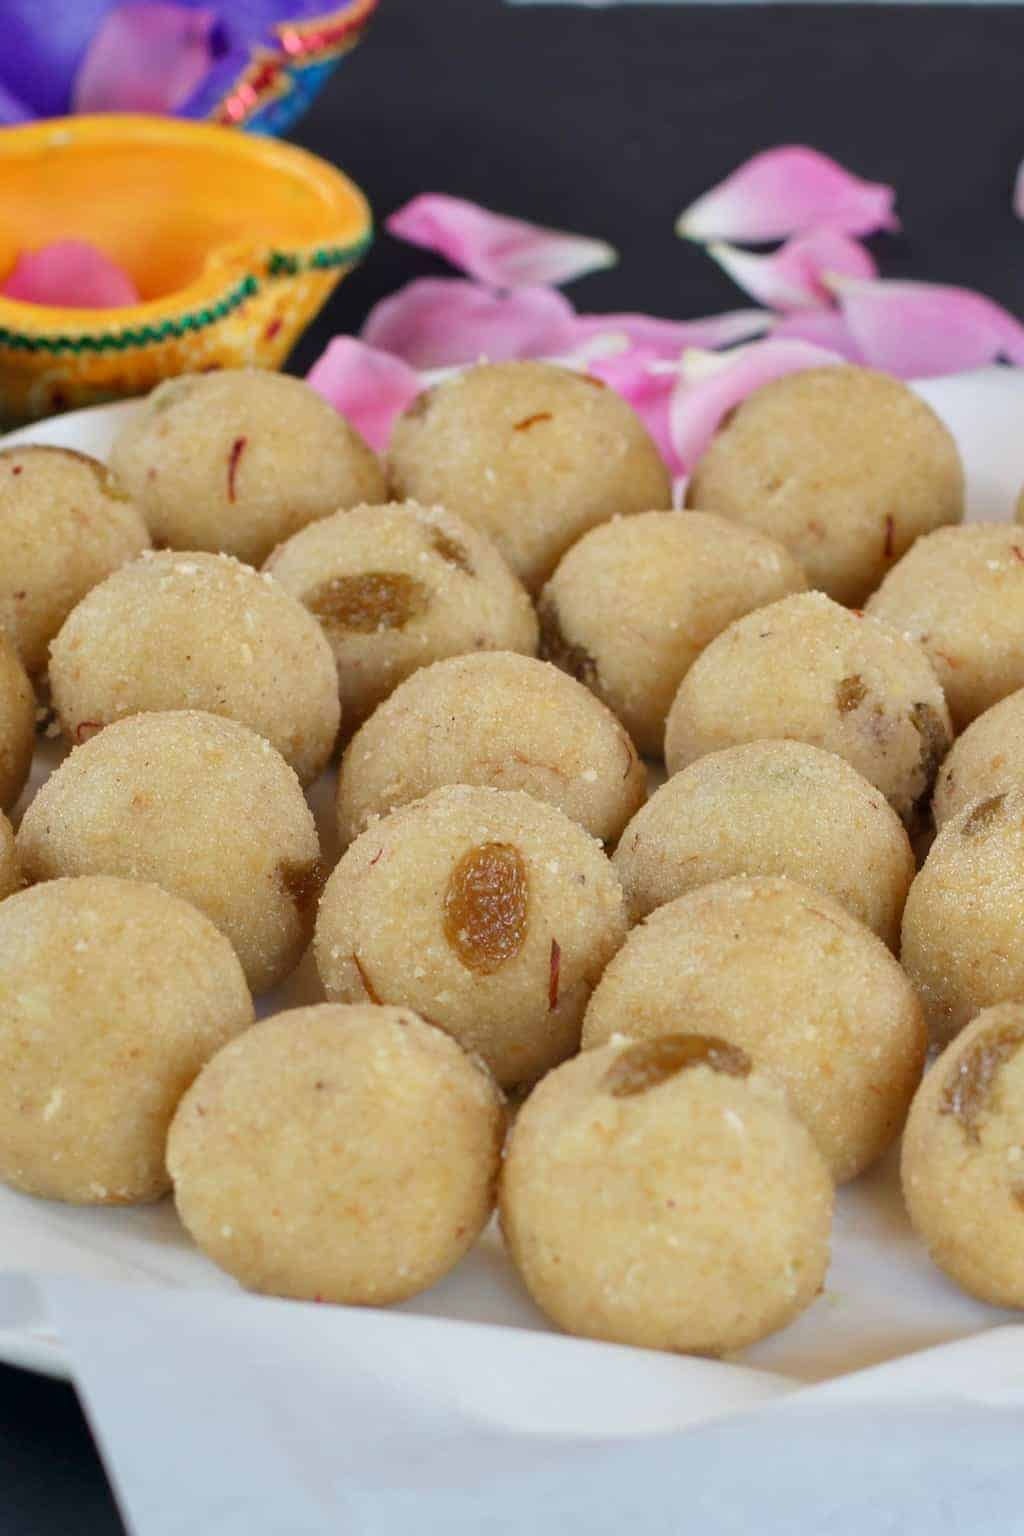 Rava Coconut Ladoo - Soft melt in the mouth dessert balls AKA